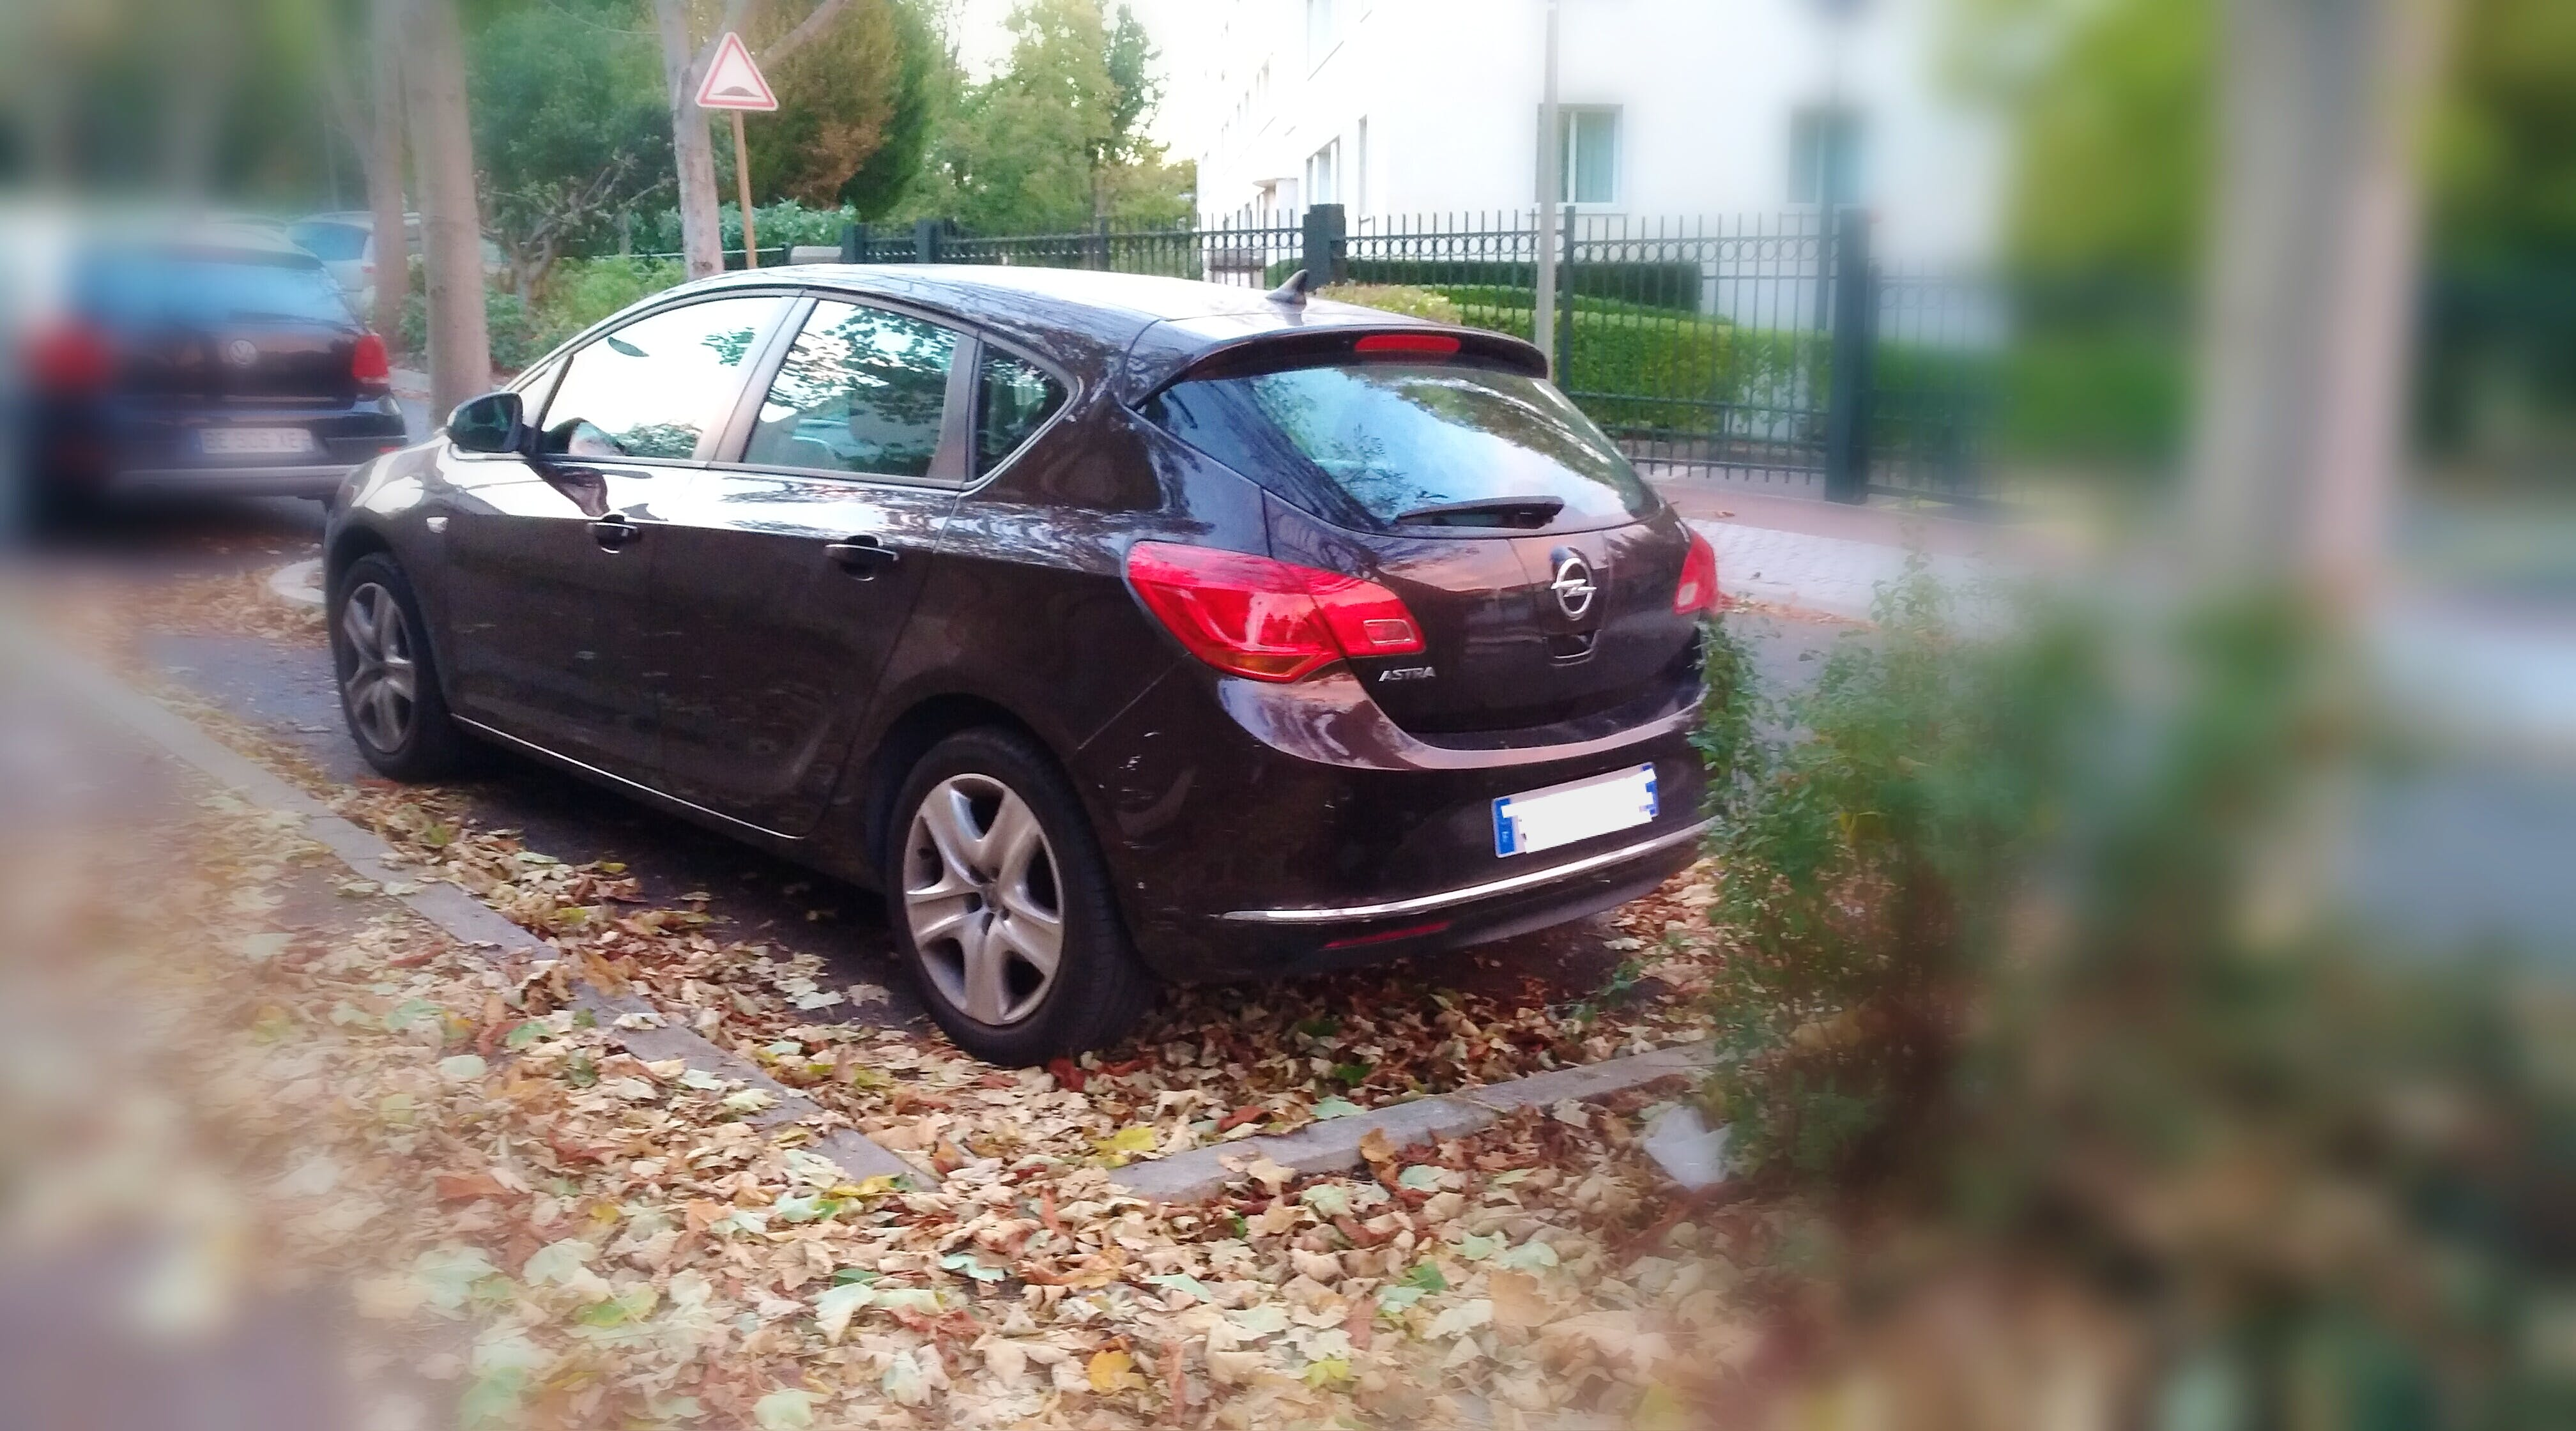 Opel Astra 1.4 Twinport 100 ch Edition avec Entrée audio / iPod